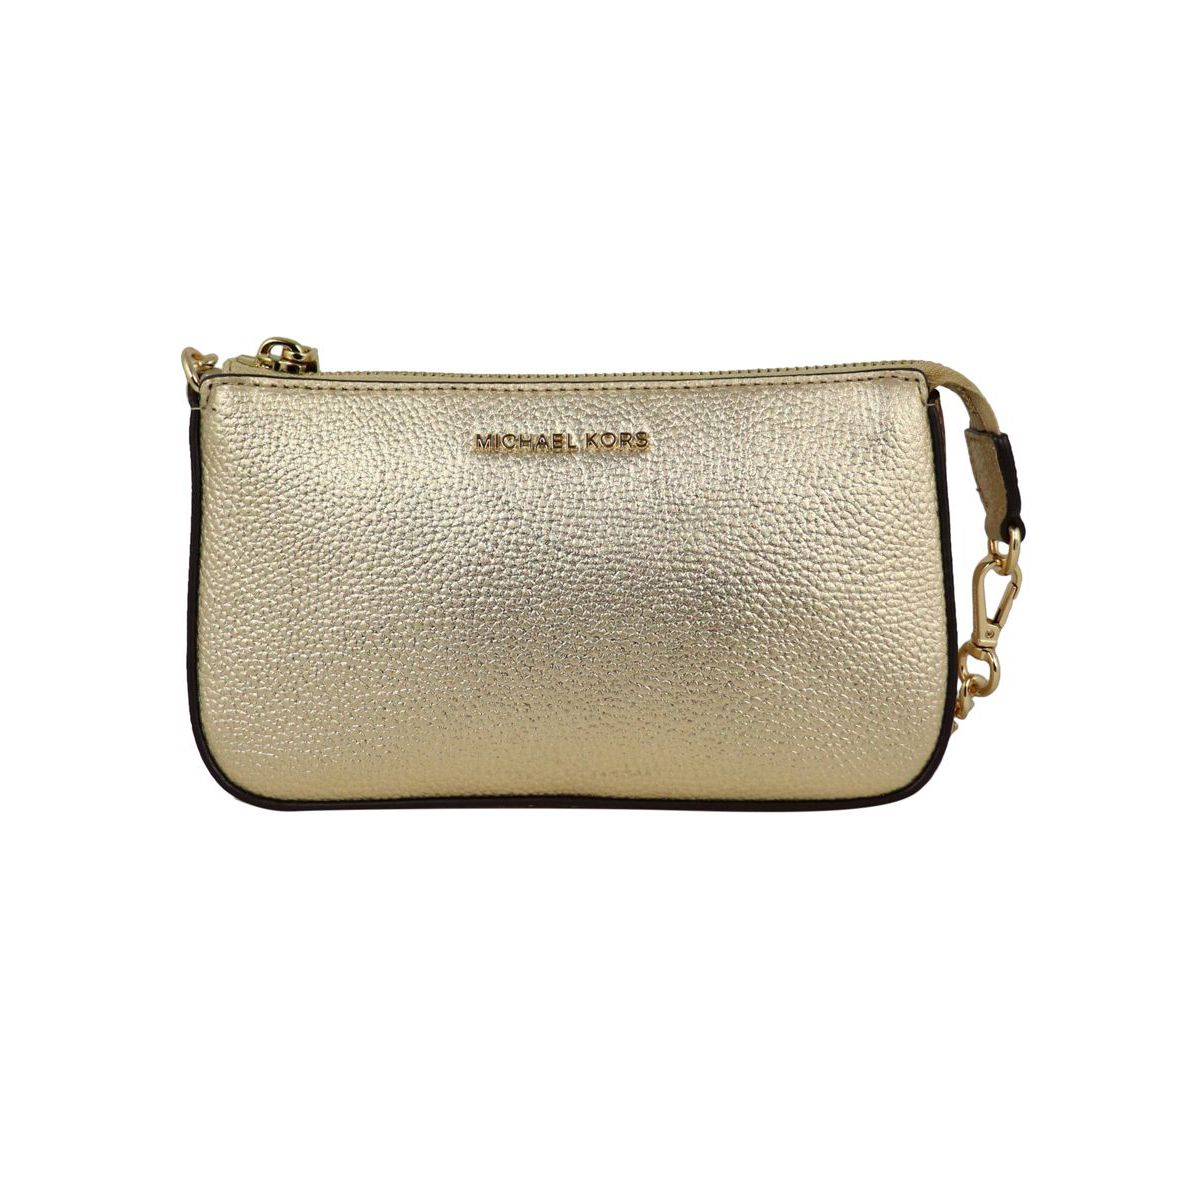 Pochette in textured leather with chain shoulder strap Gold Michael Kors